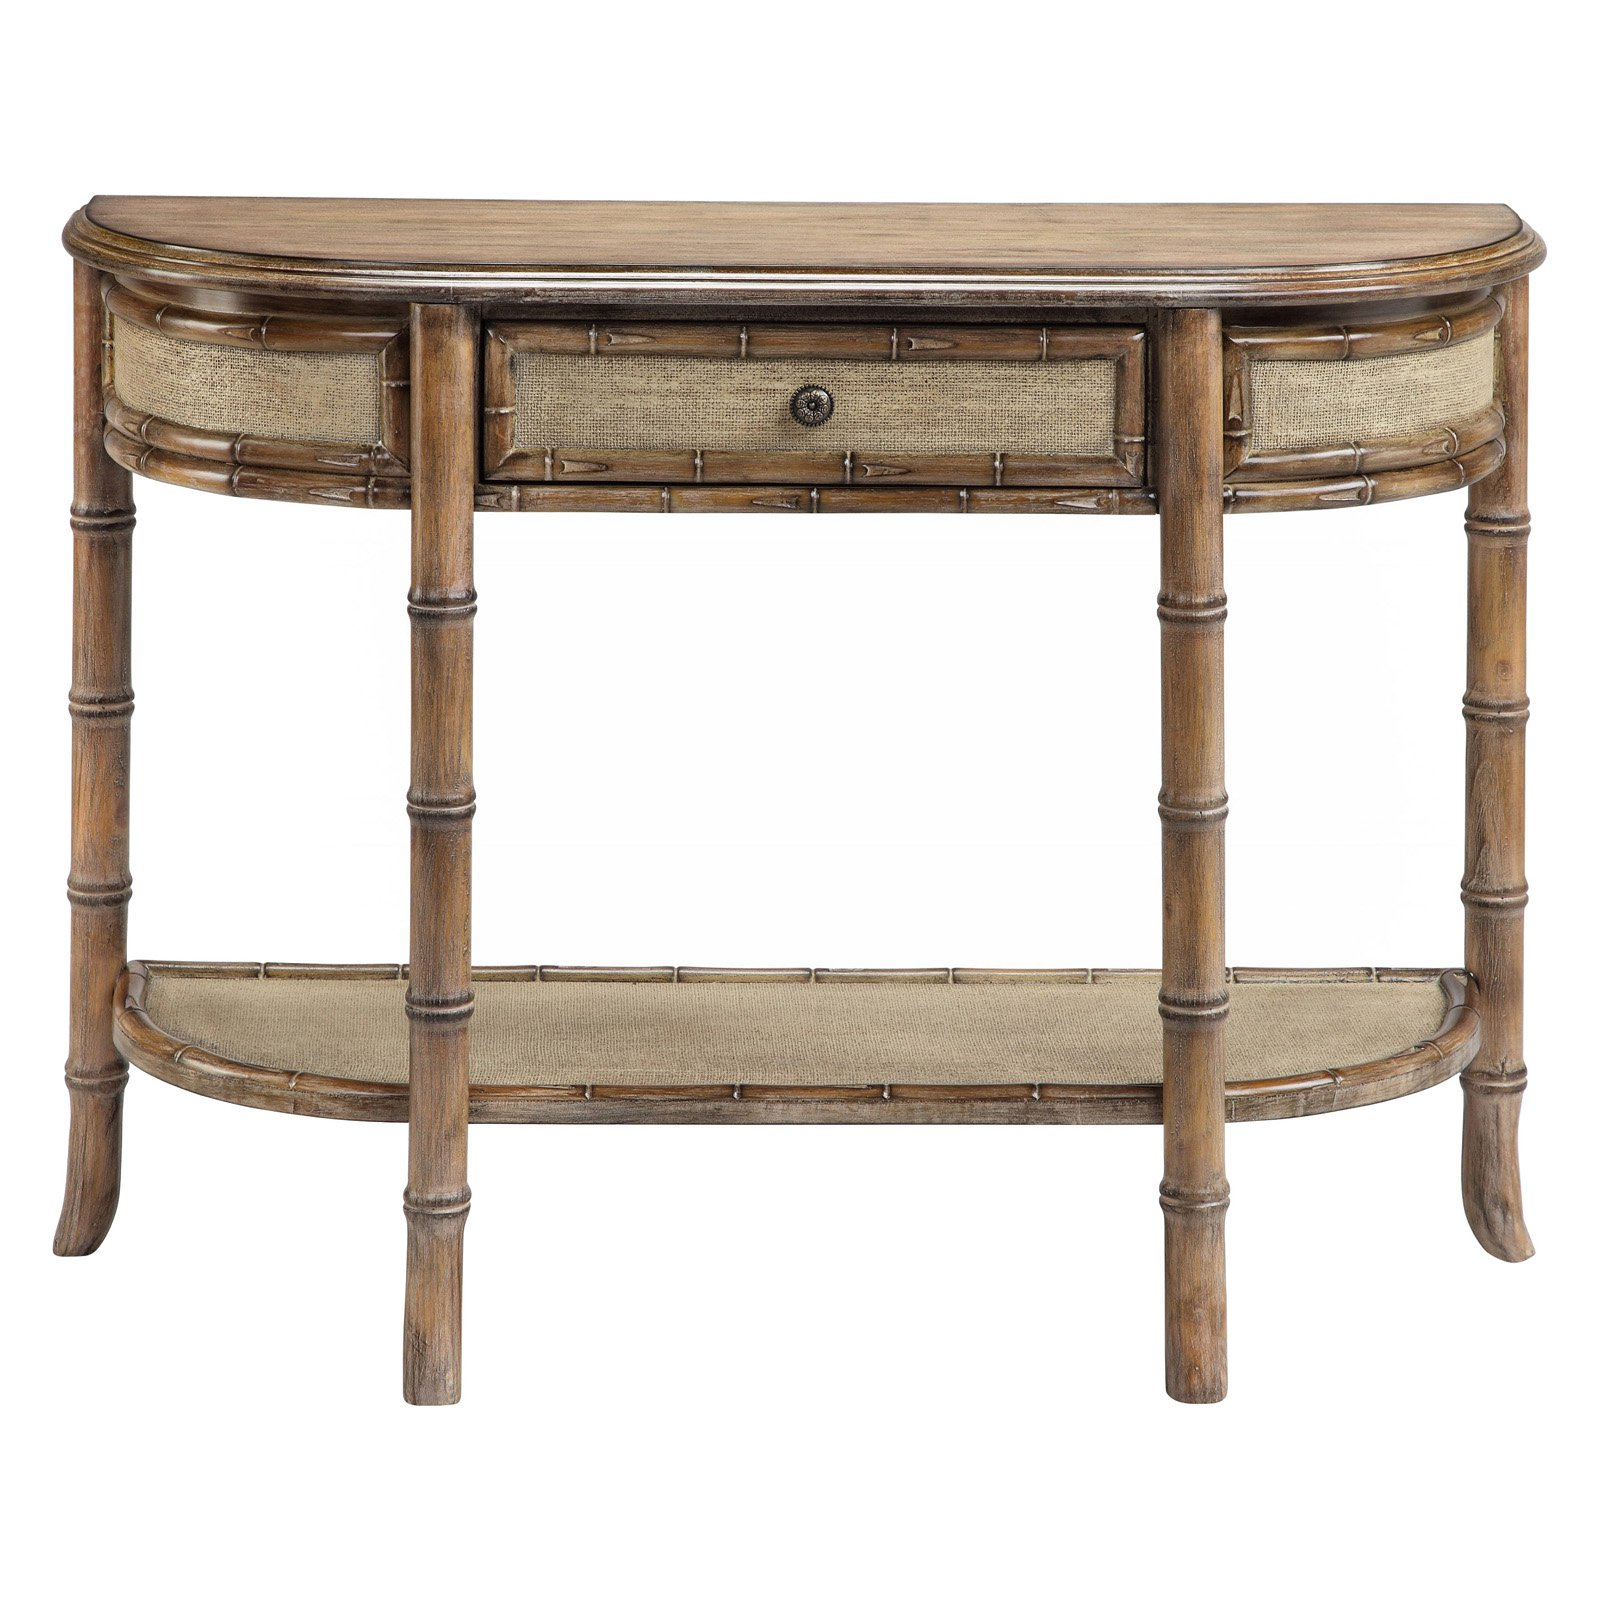 Stein World Panama Jack Sandpiper Console Table with Drawer